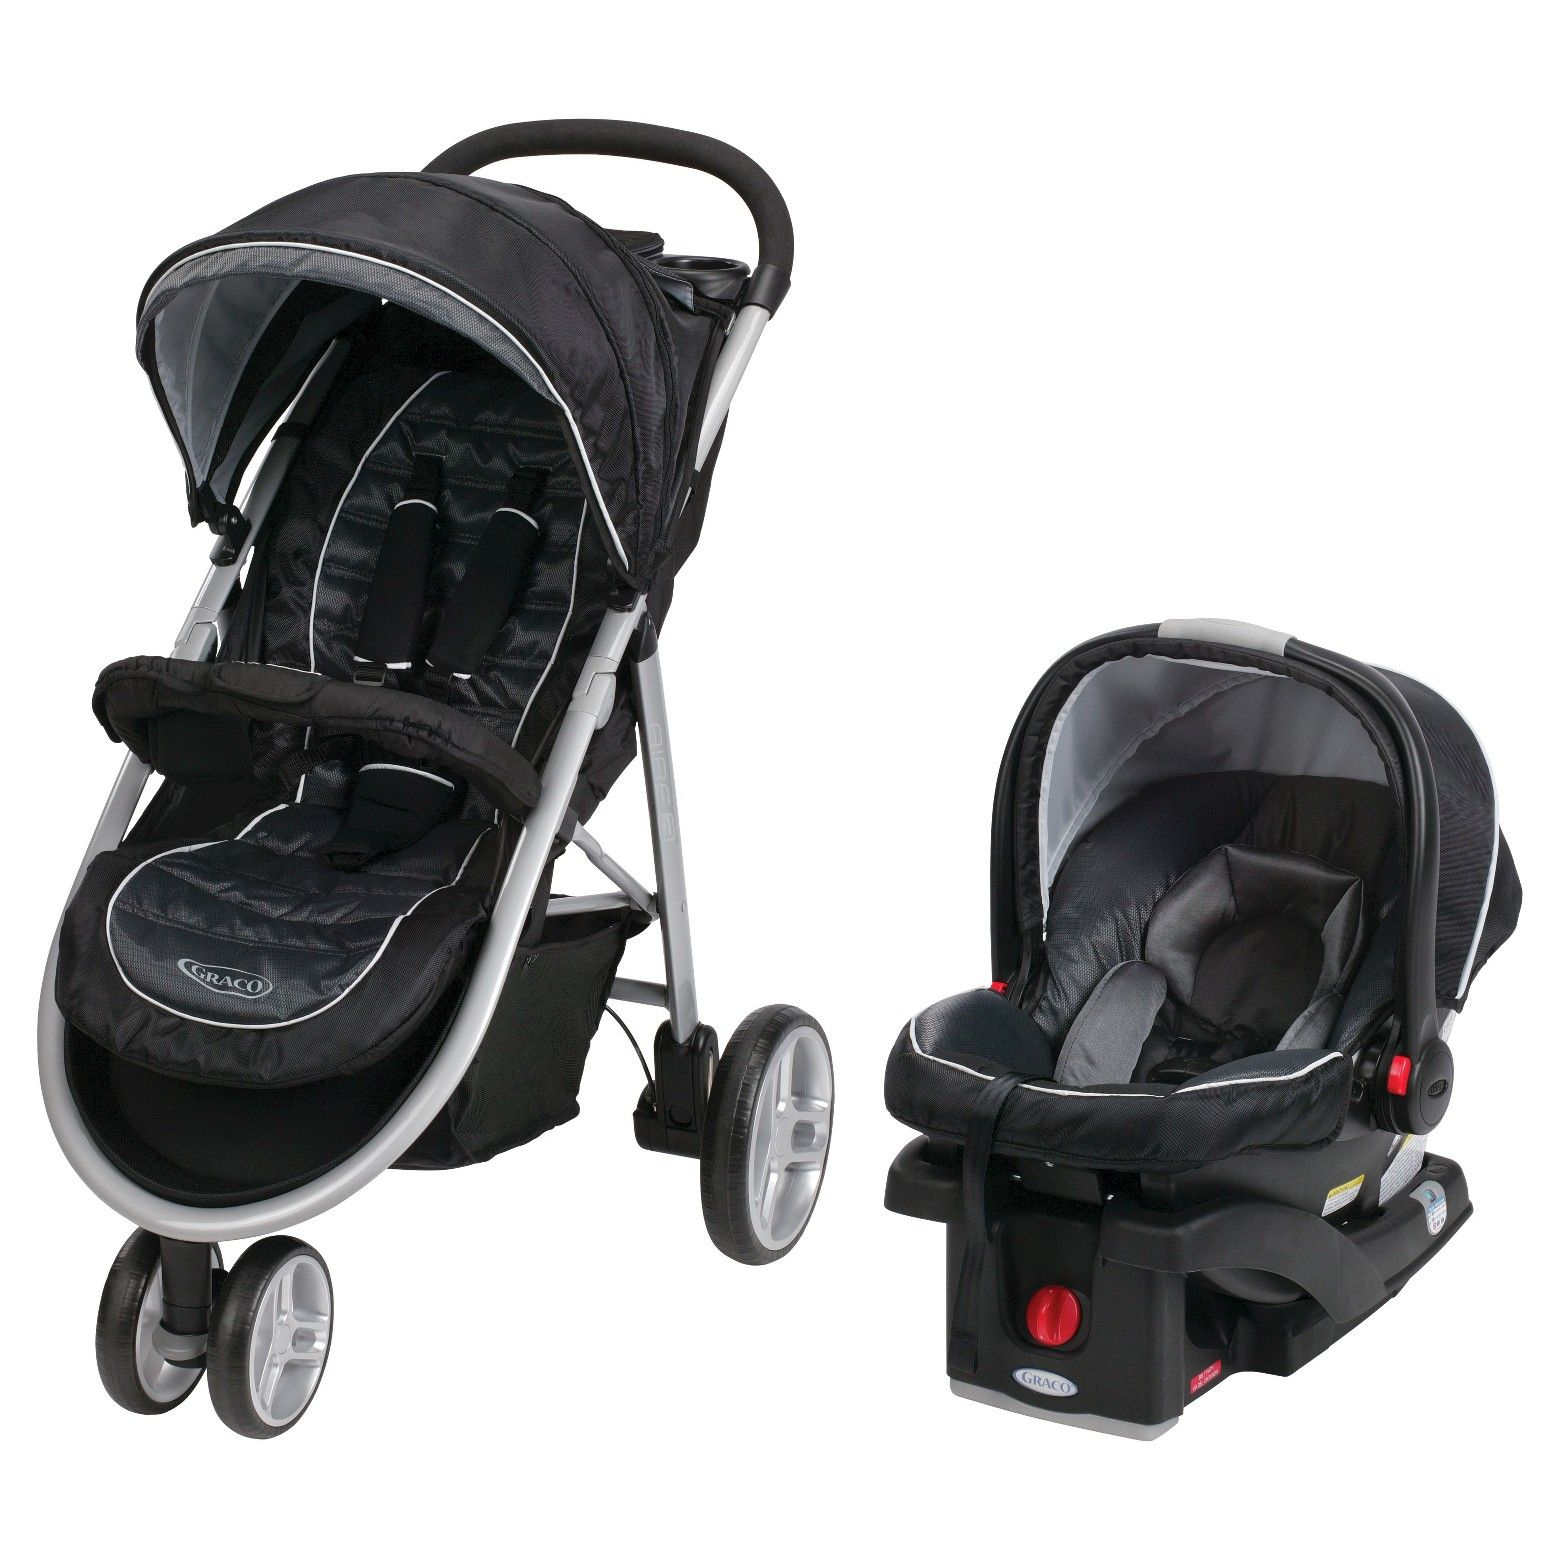 204 at Target. The Graco Aire3 Click Connect Stroller